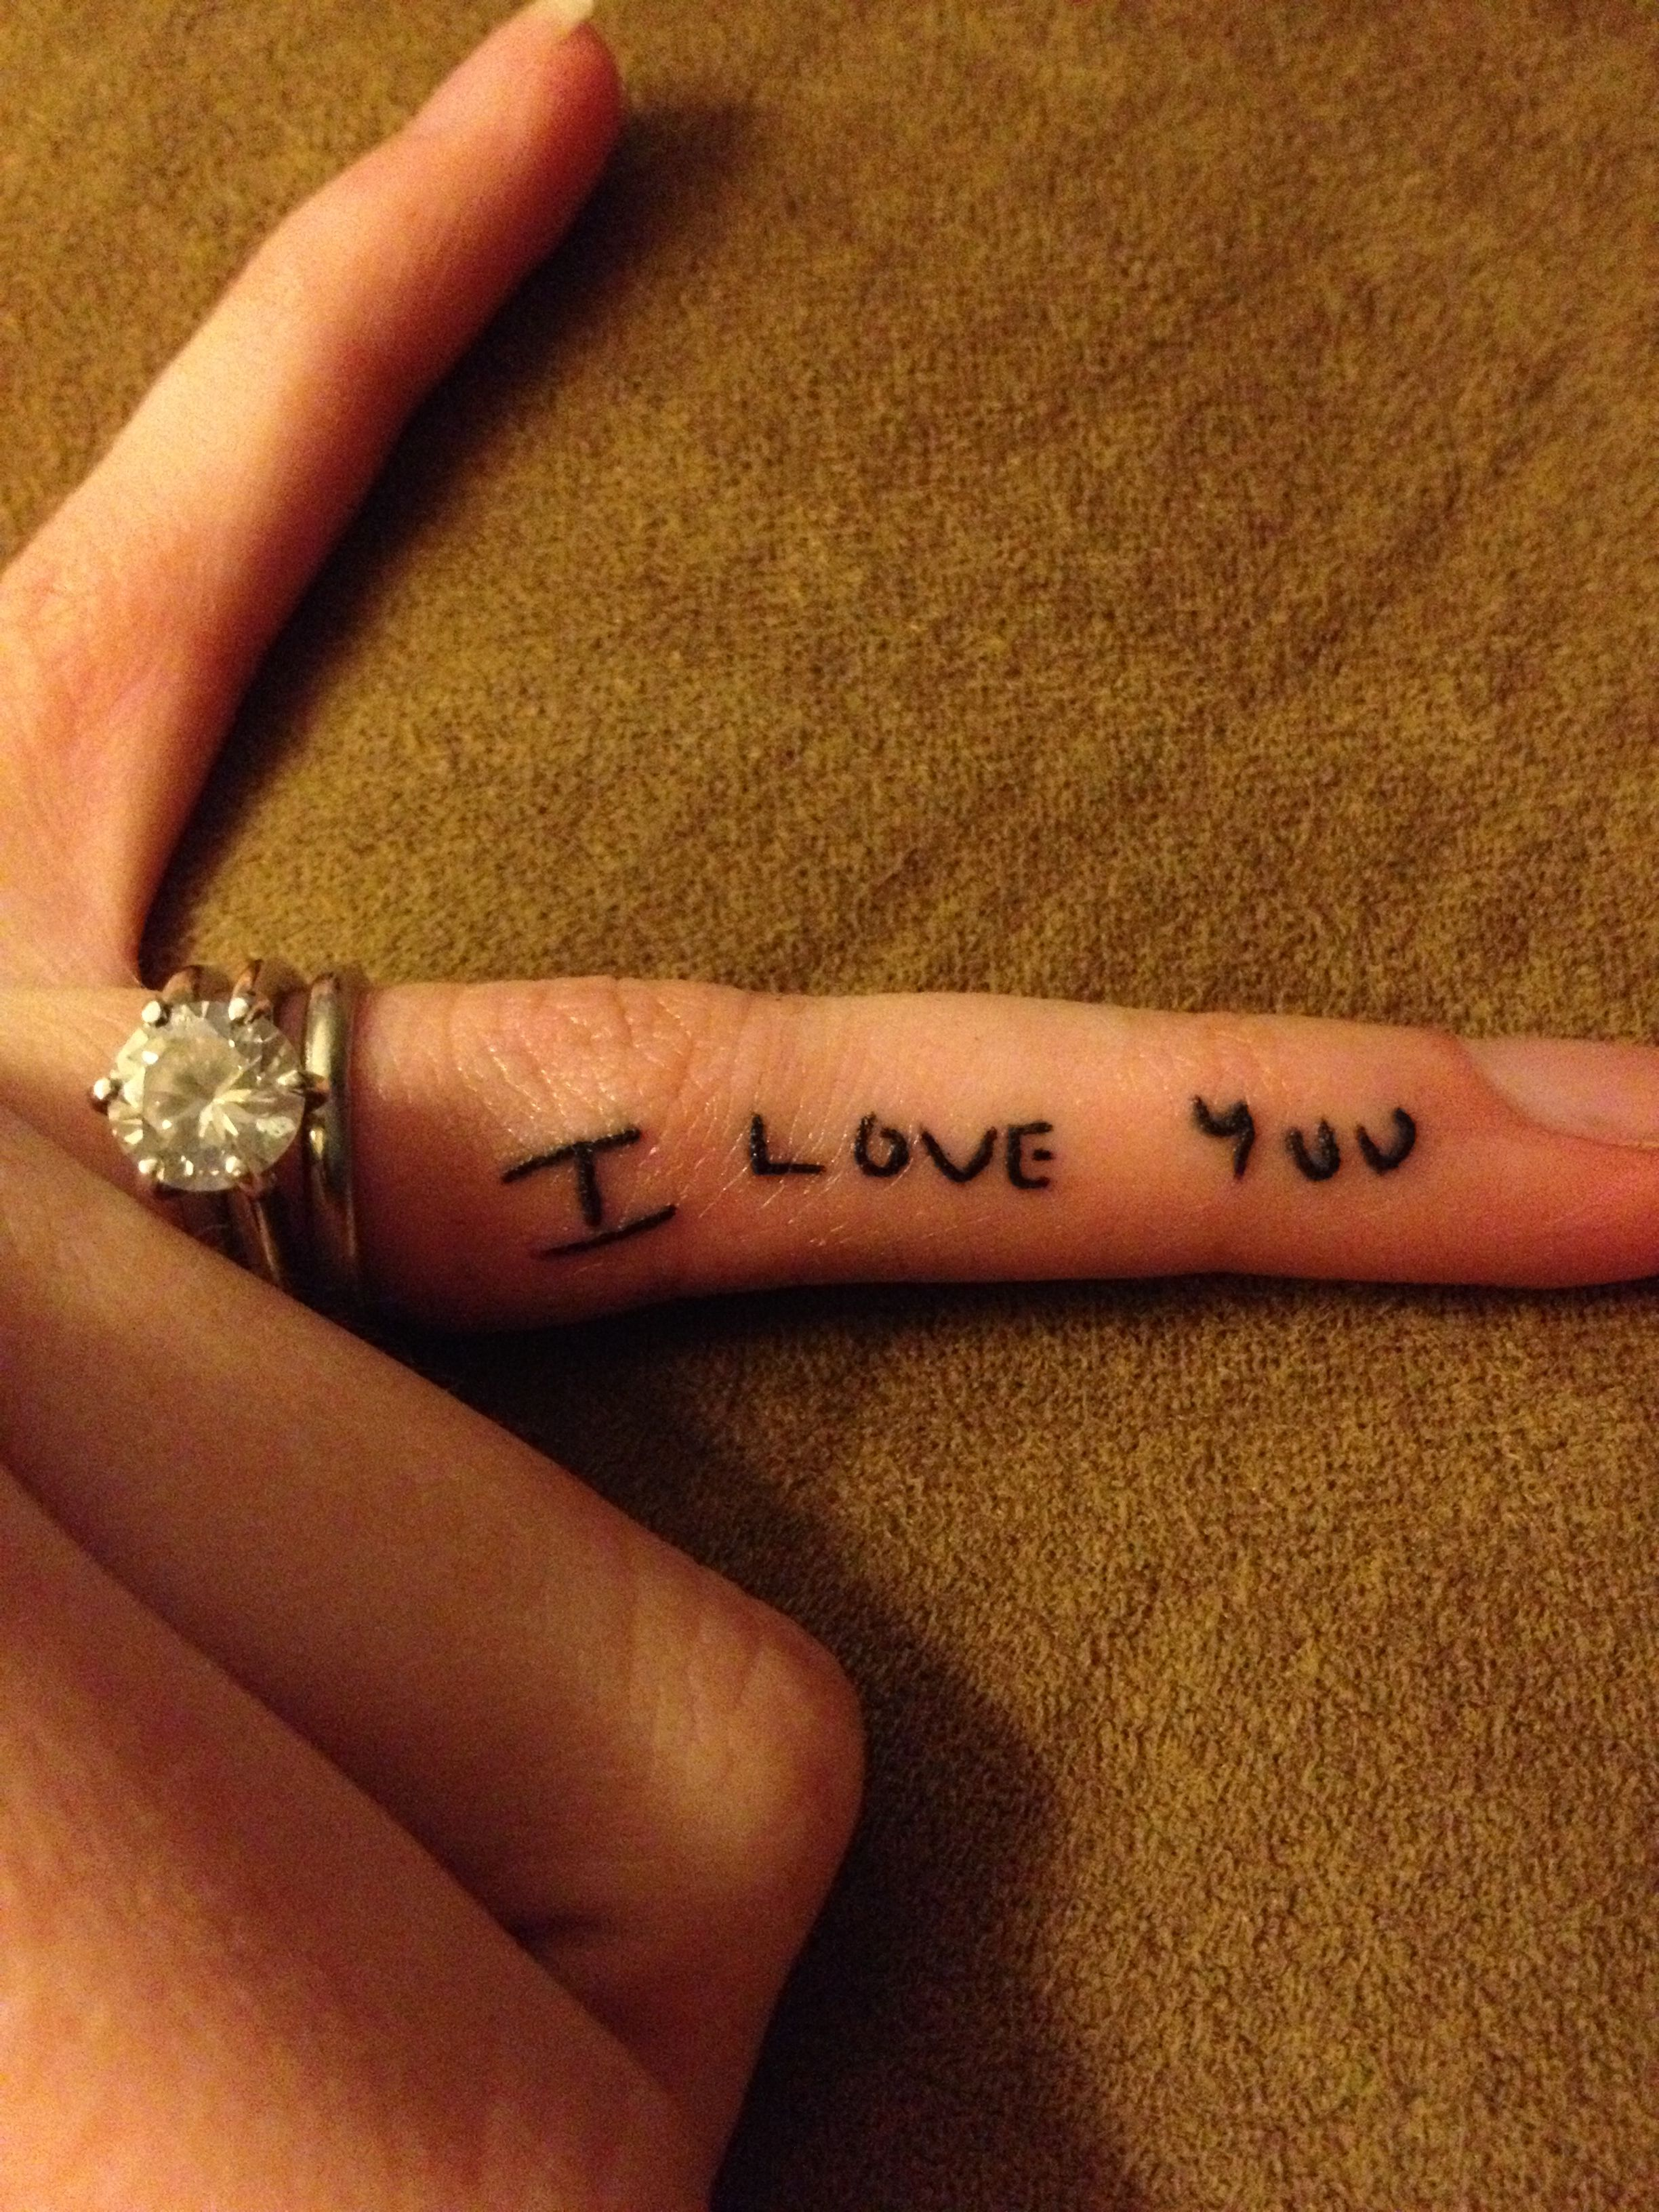 Pin By Crystal Dempsey On Our Love Story Love Yourself Tattoo Hand Written Tattoos Handwriting Tattoos